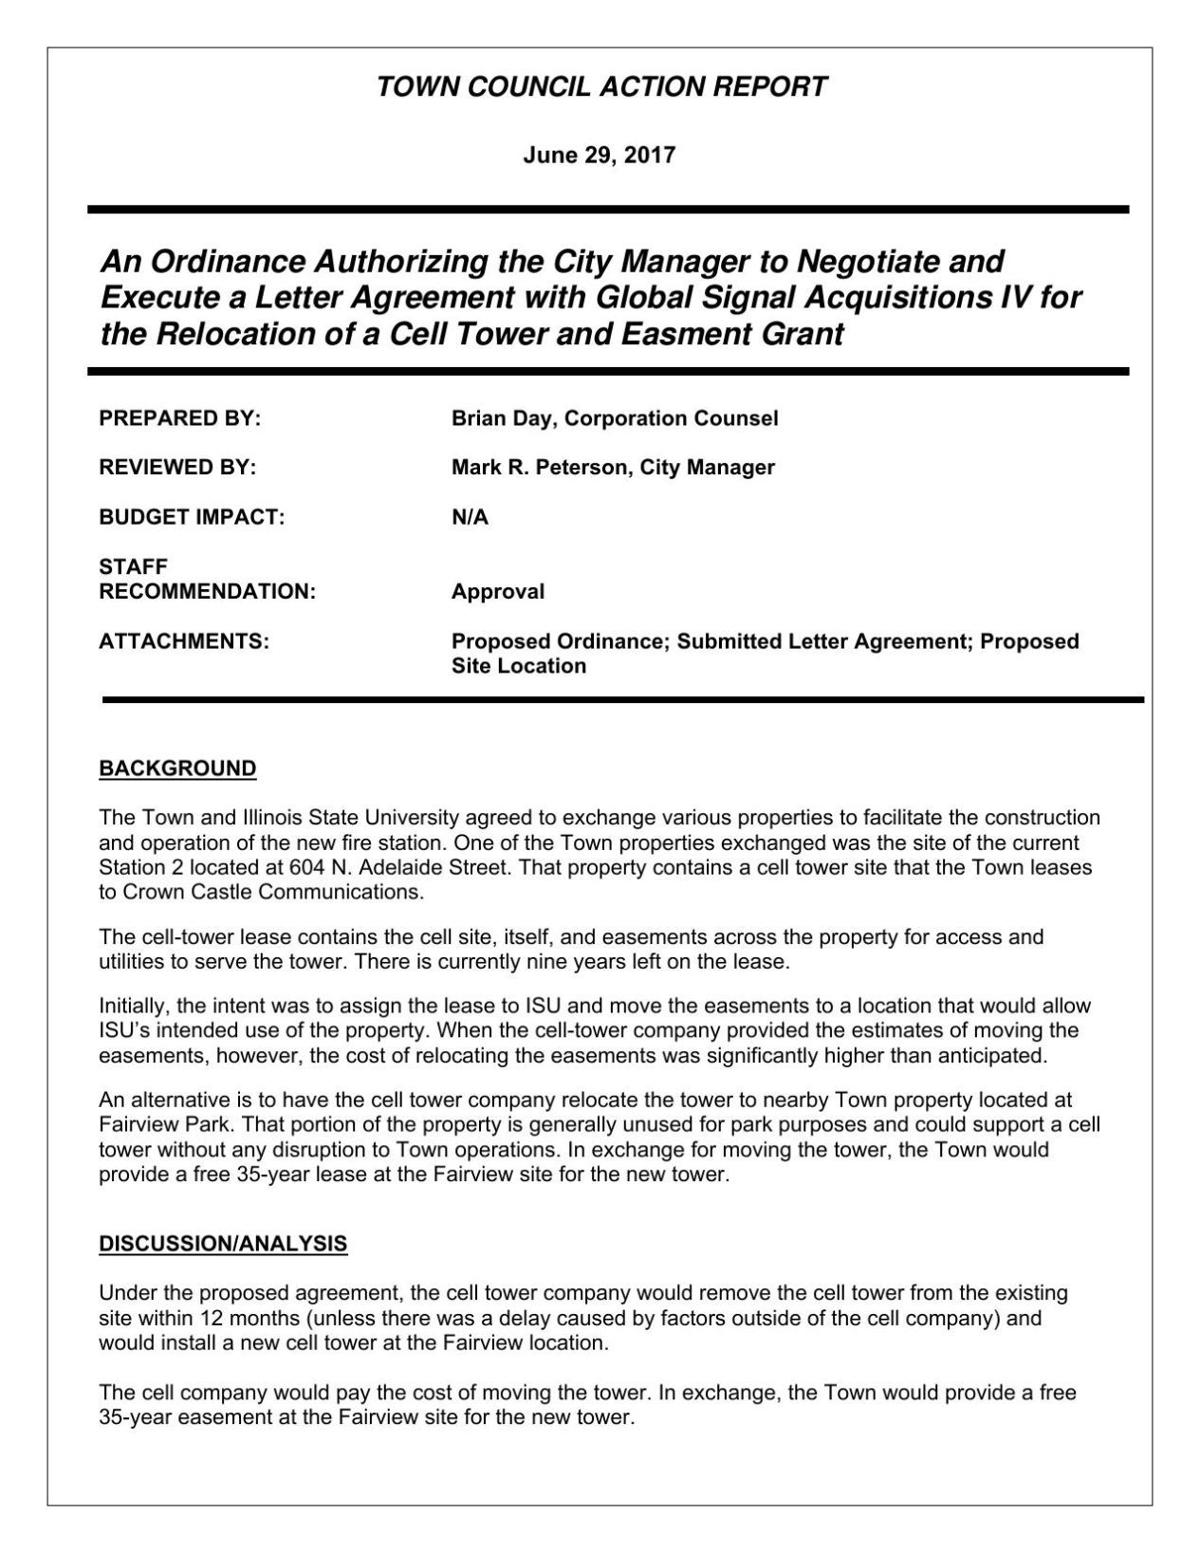 Normal City Council Materials On Cell Tower Relocation